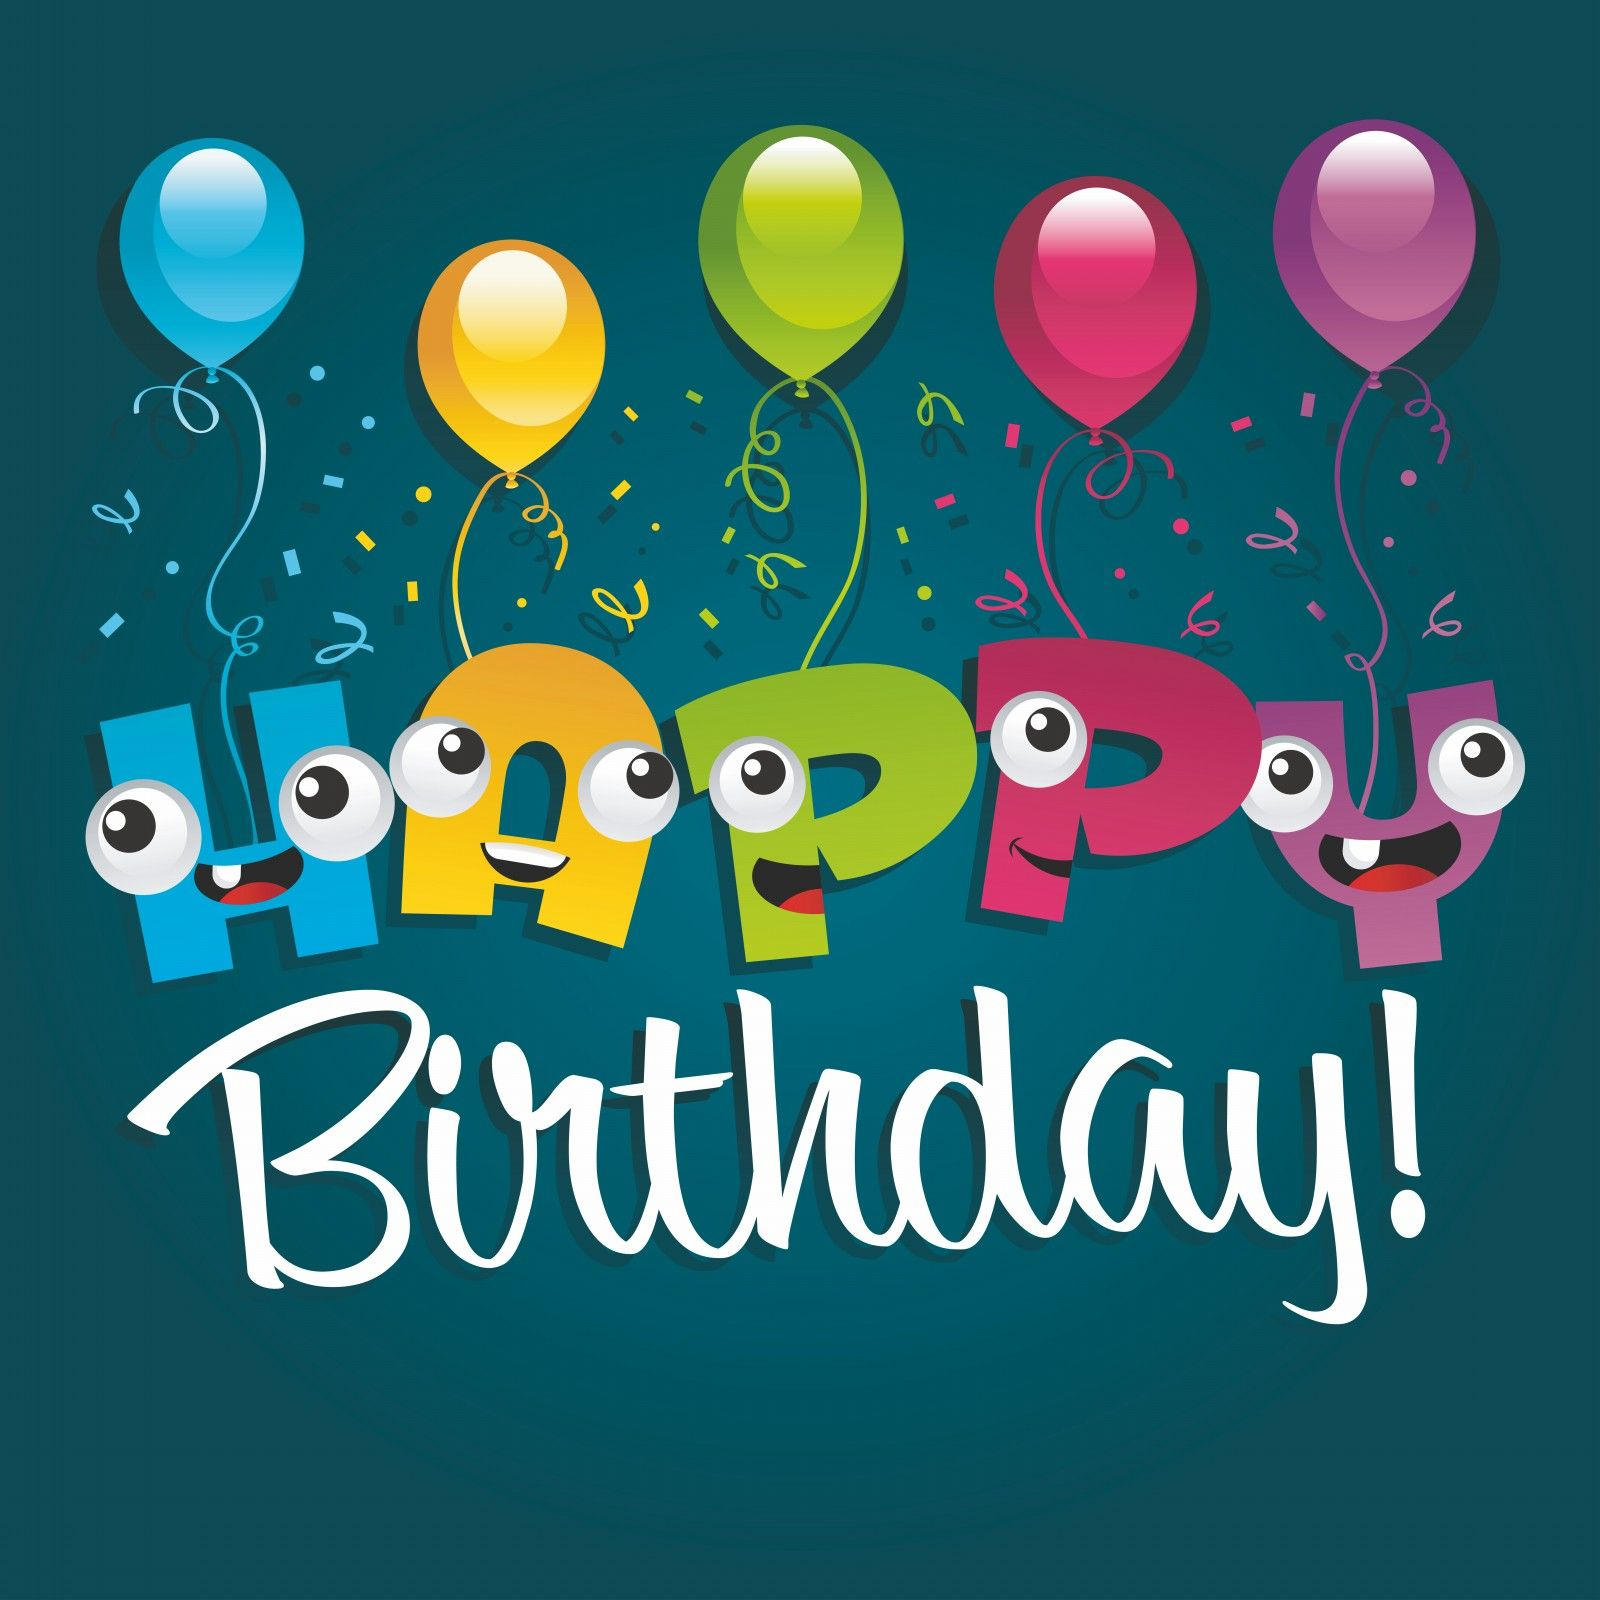 Happy Birthday Greeting Card Design Funny cartoon Characters24 – Best Birthday Card Design